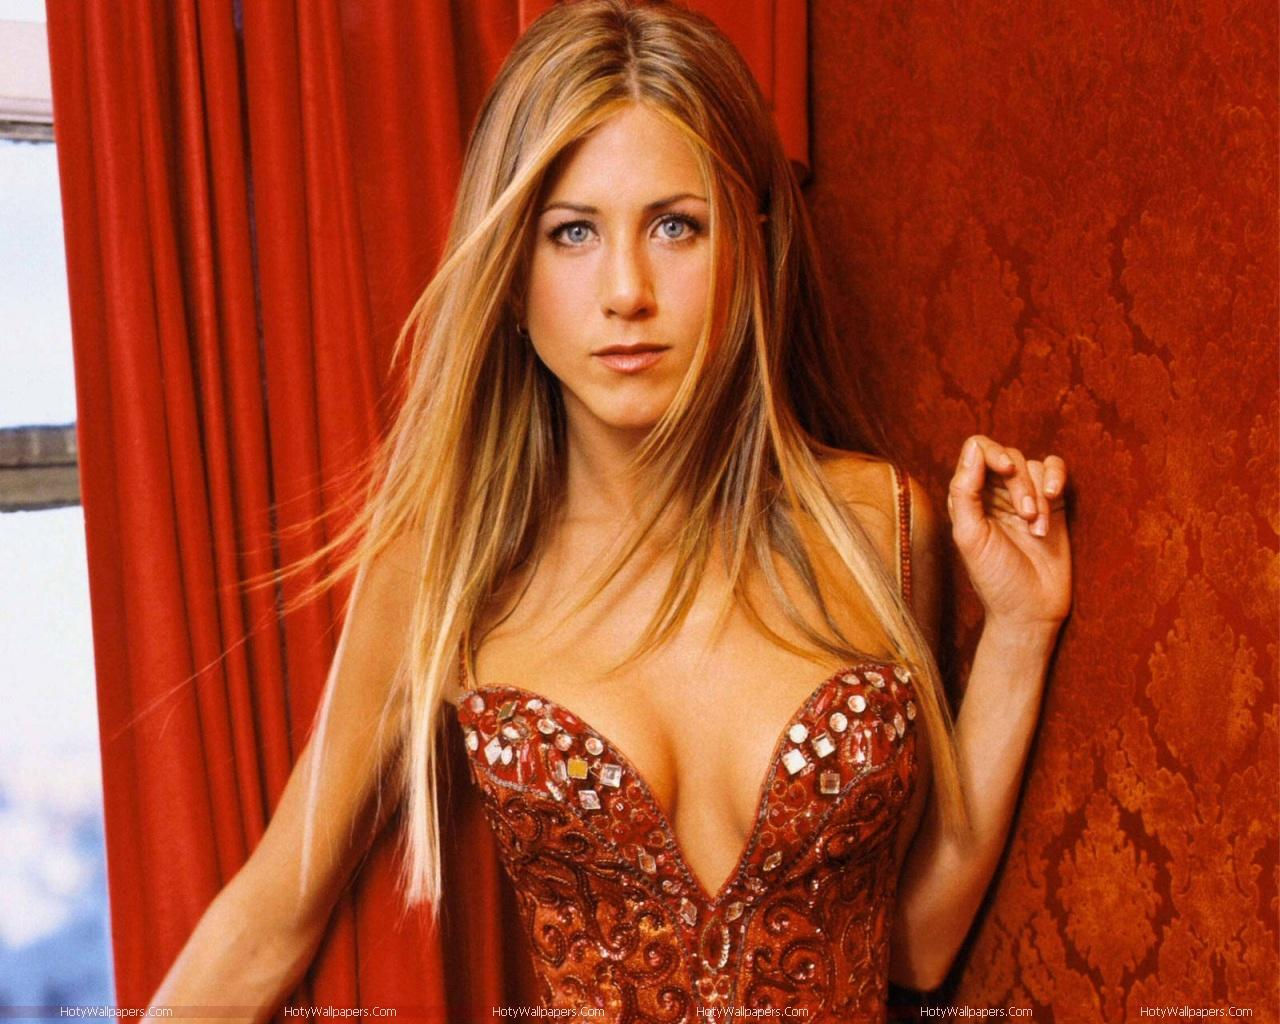 http://1.bp.blogspot.com/-bb9waVmie2A/TmY4jaA7epI/AAAAAAAAKgw/f1jVkpRSWIs/s1600/Jennifer_Aniston_so_beautiful.jpg